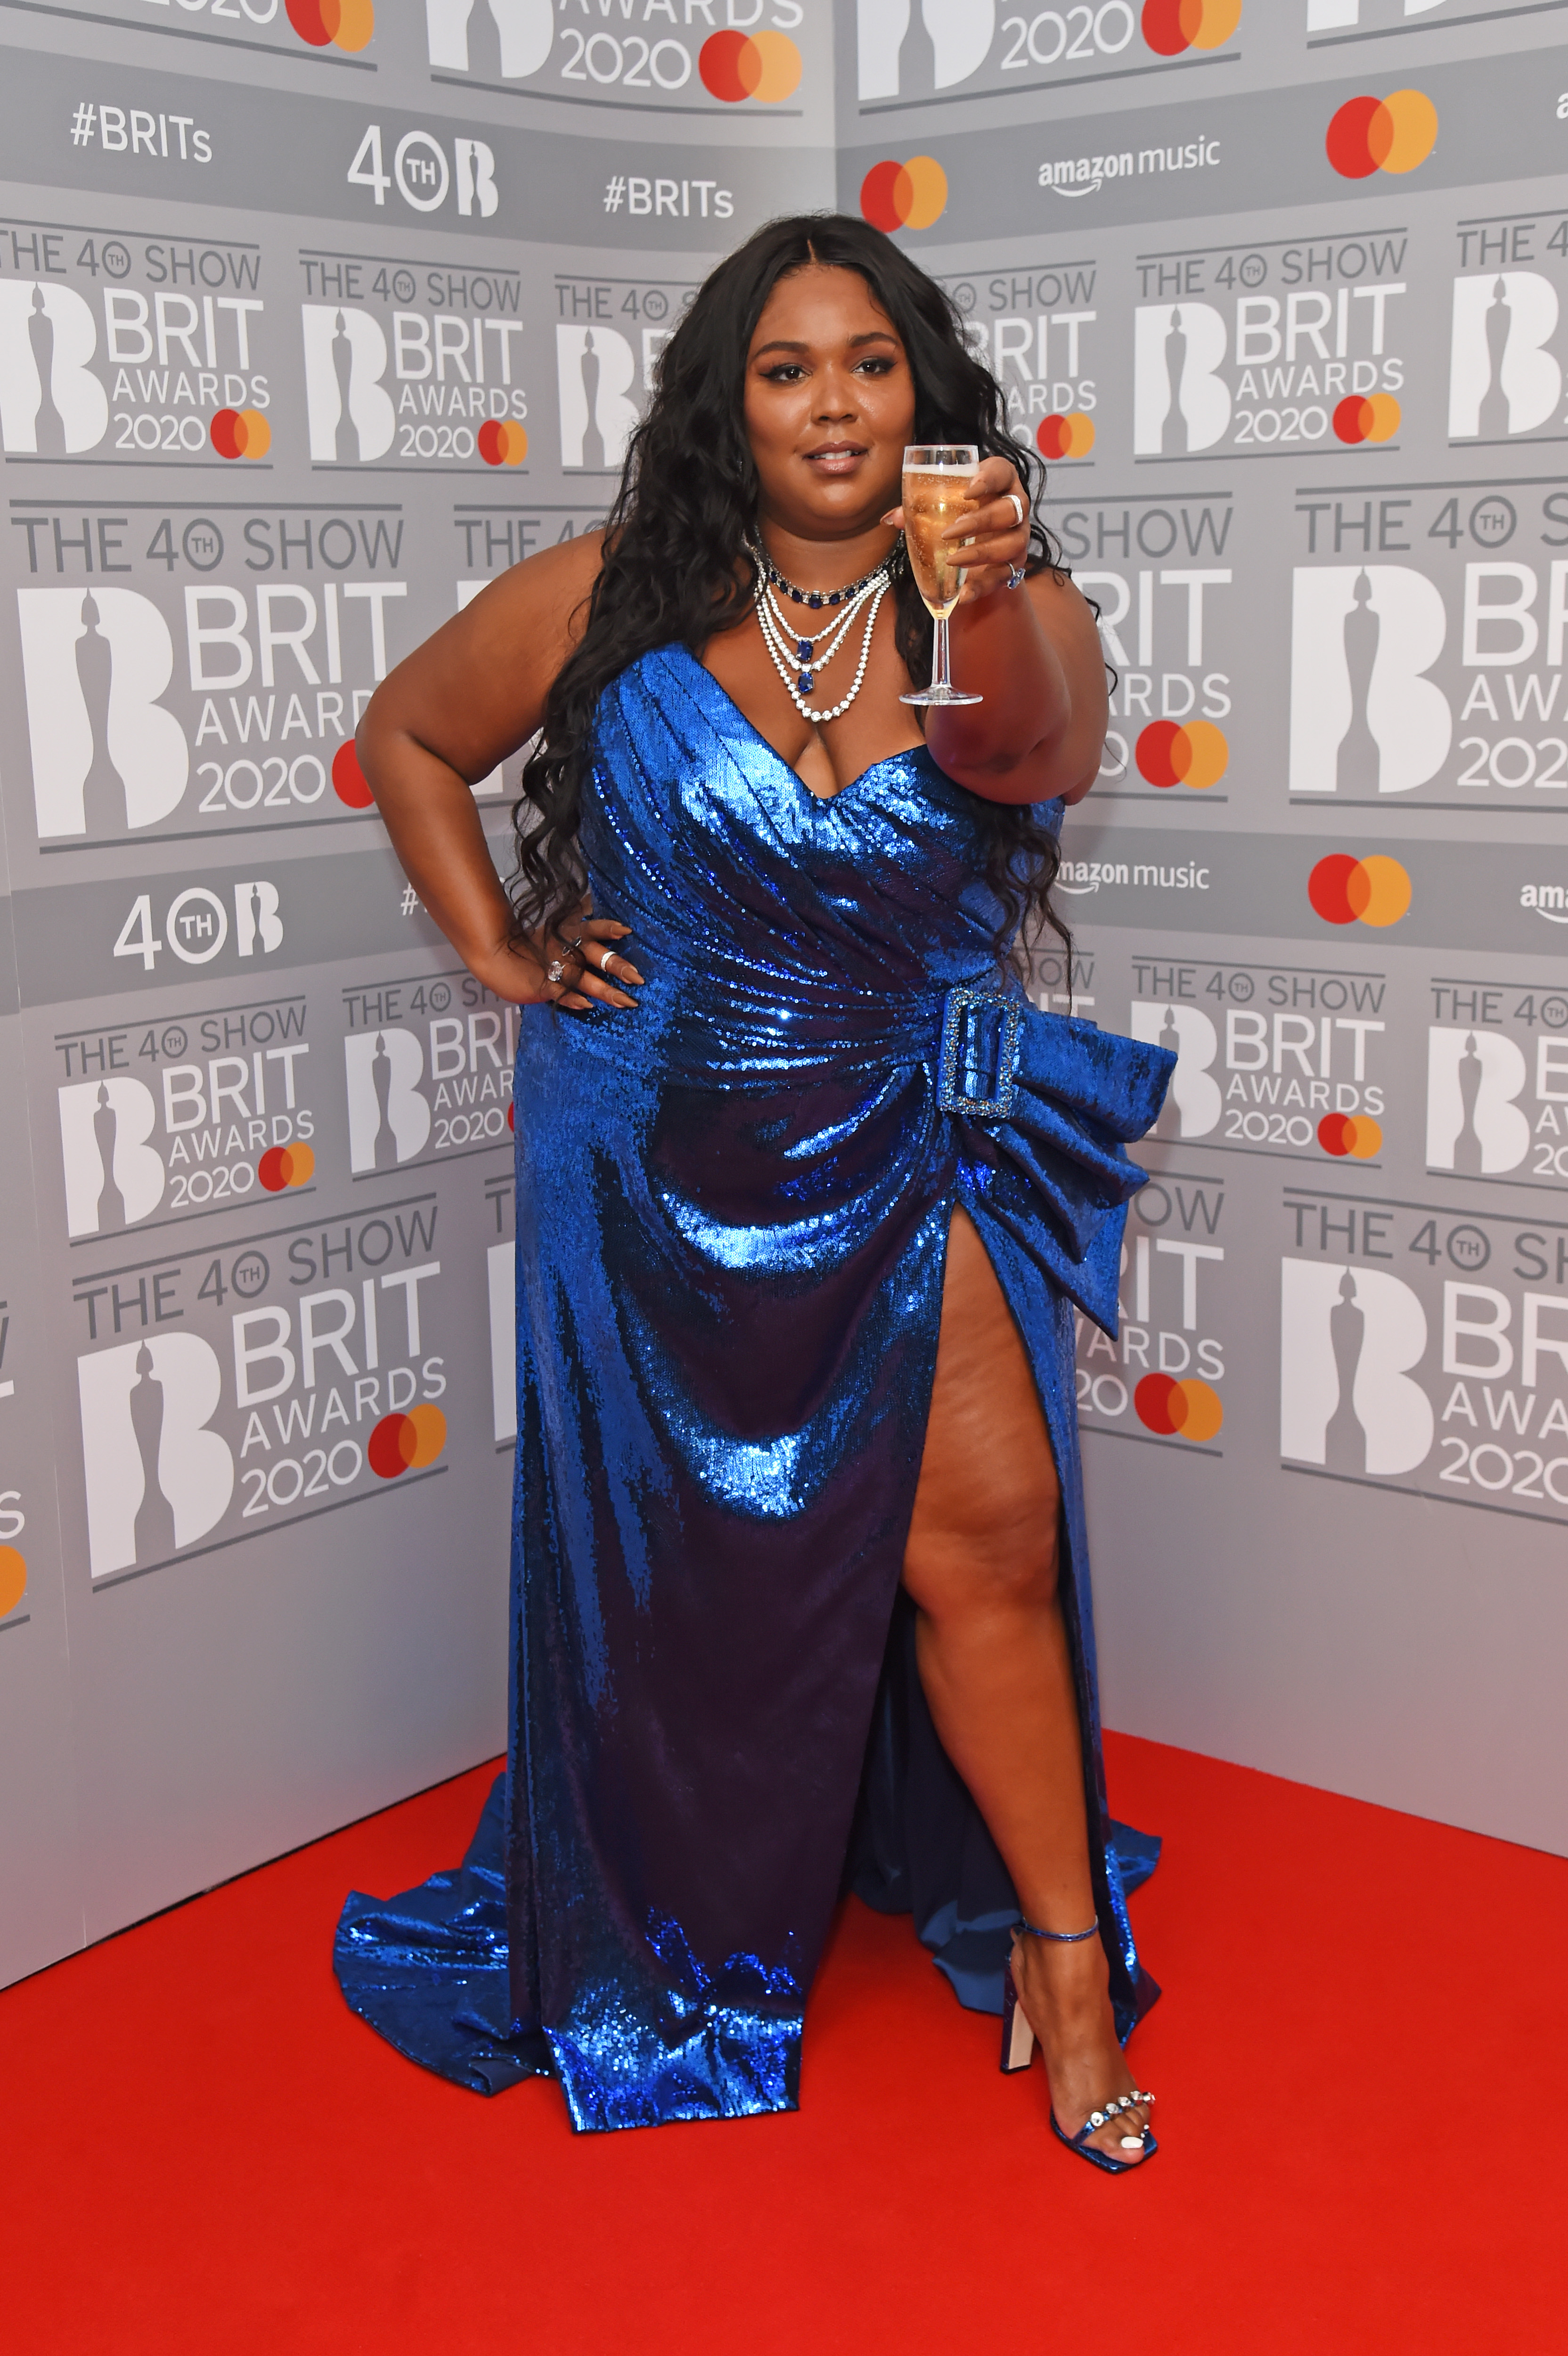 Lizzo poses in the winners room at The BRIT Awards 2020 at The O2 Arena on February 18, 2020 in London, England.  (Photo by David M. Benett/Dave Benett/Getty Images)